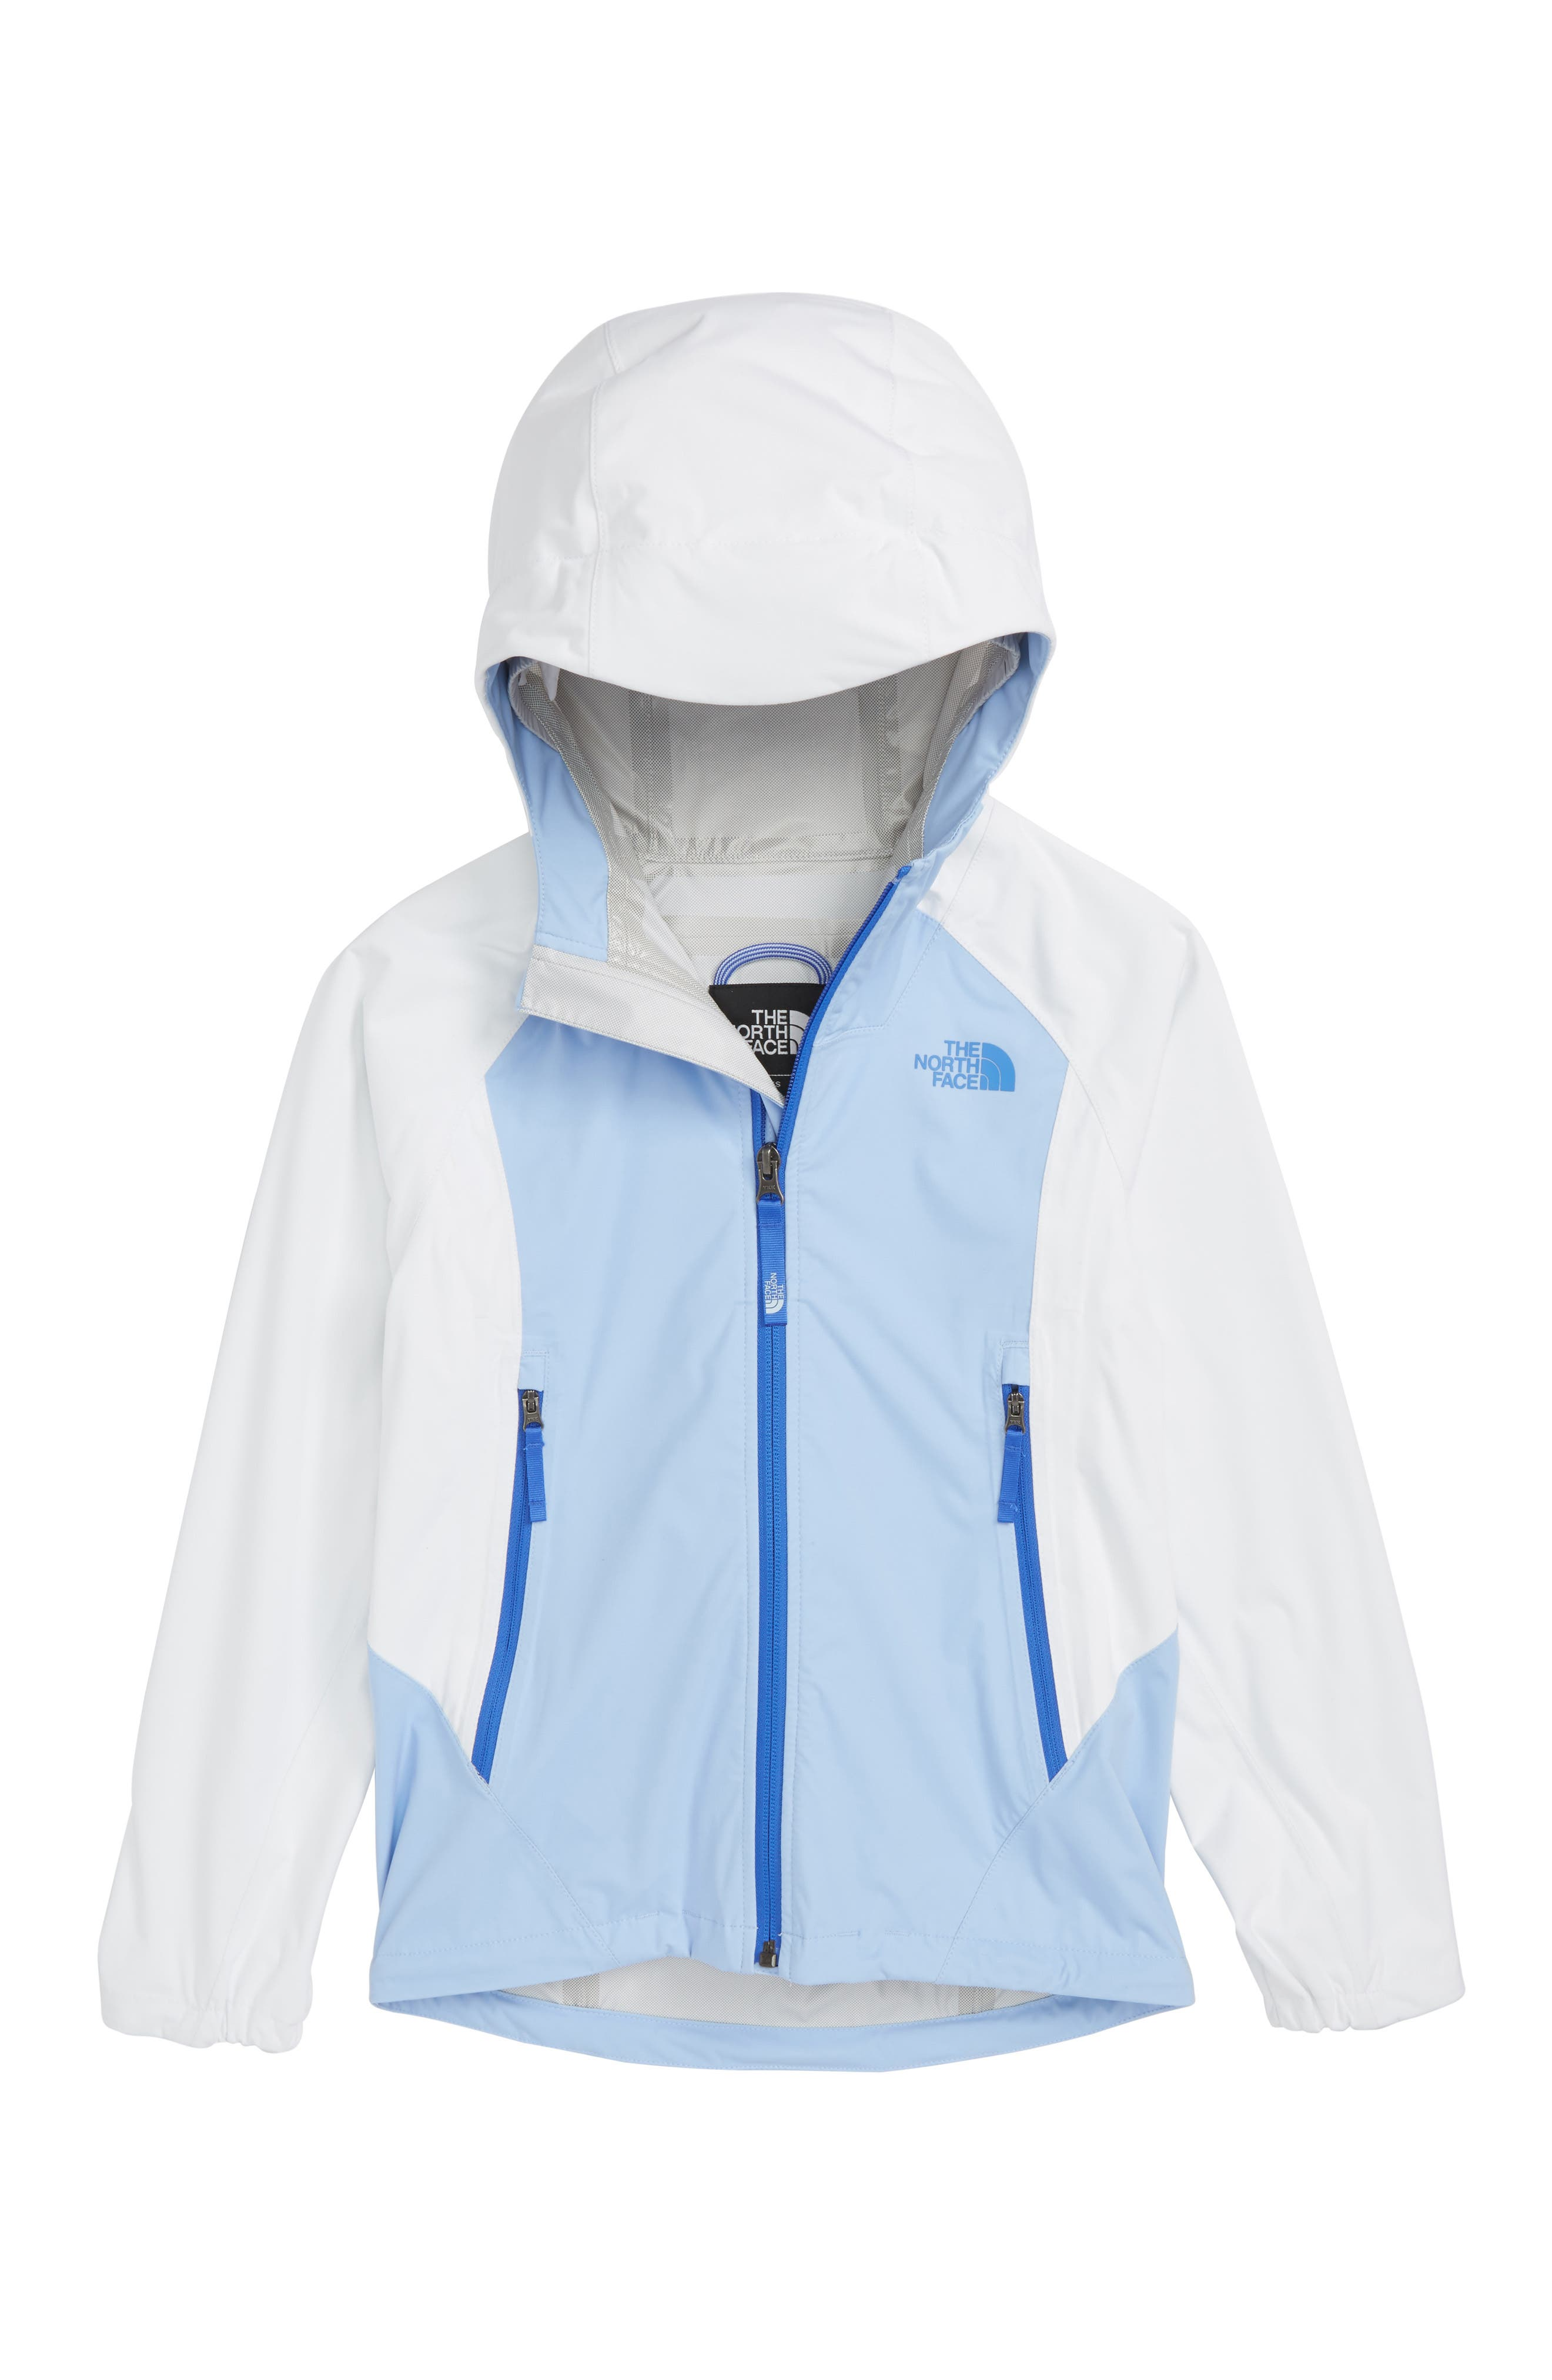 Allproof Stretch Hooded Rain Jacket,                             Main thumbnail 1, color,